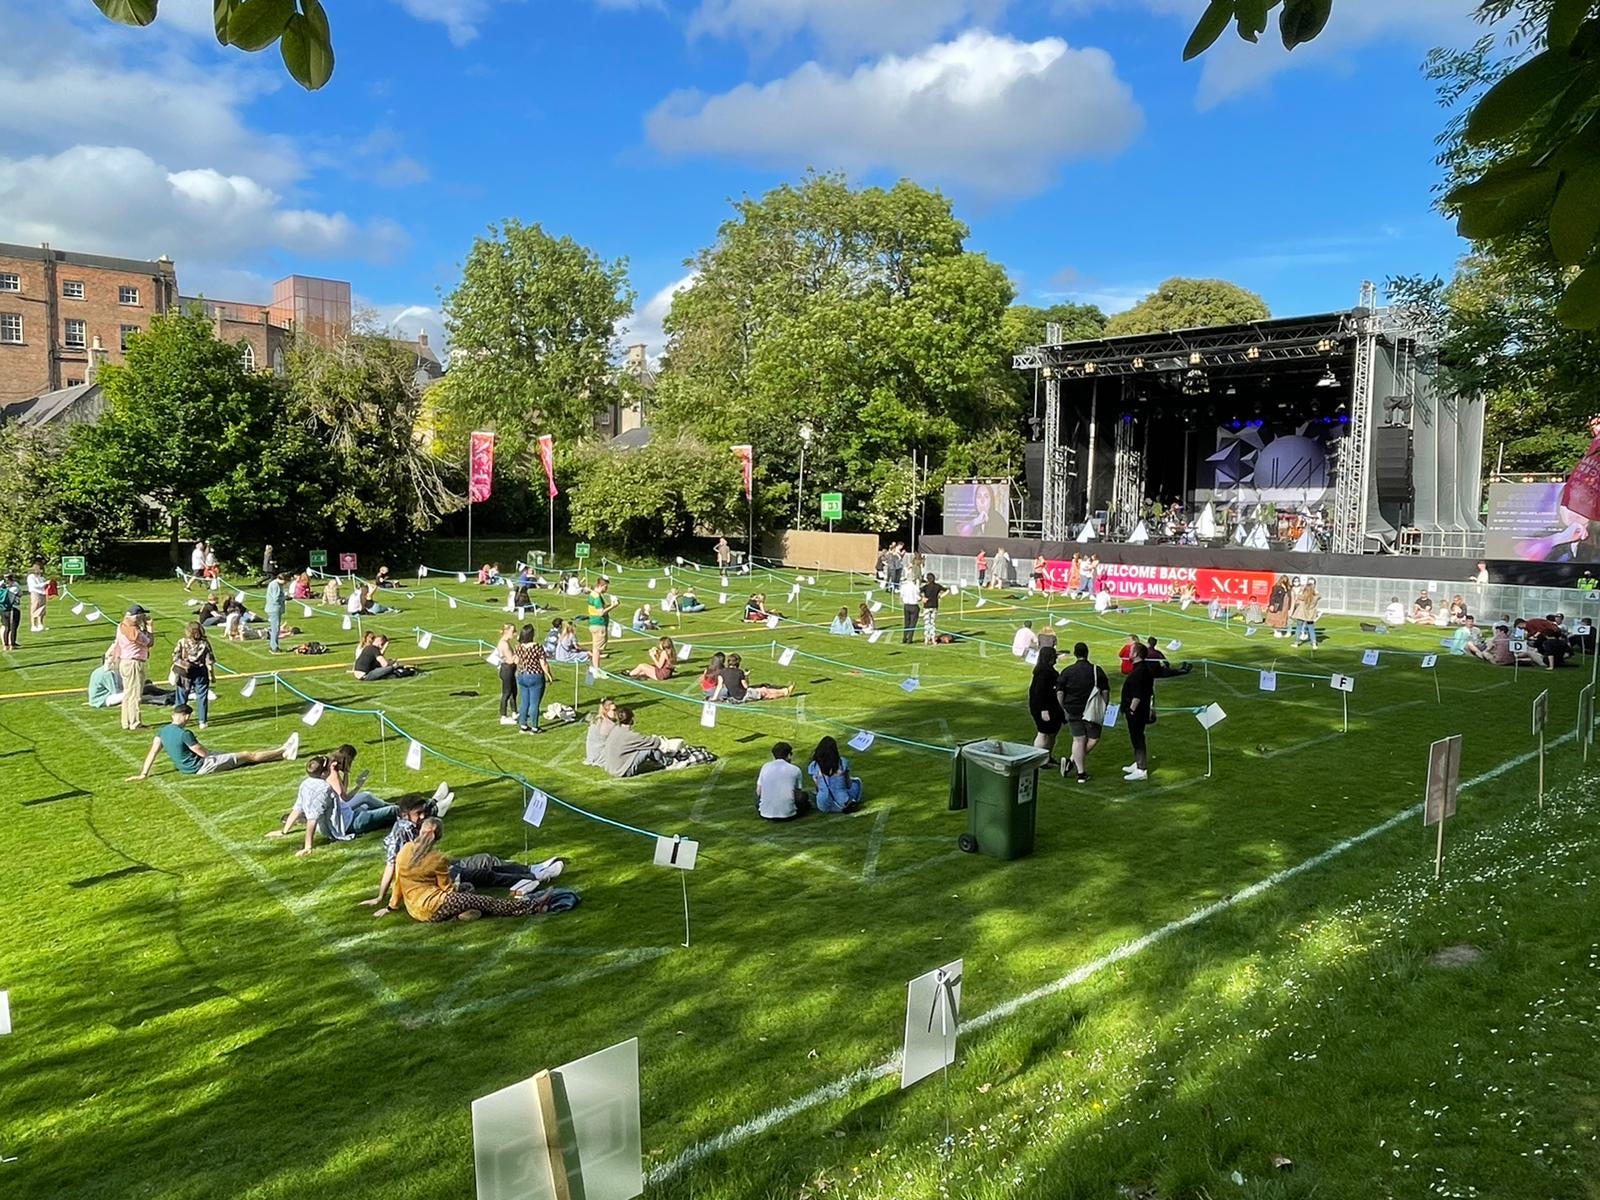 The crowd relaxes before the gig in Dublin's Iveagh Gardens